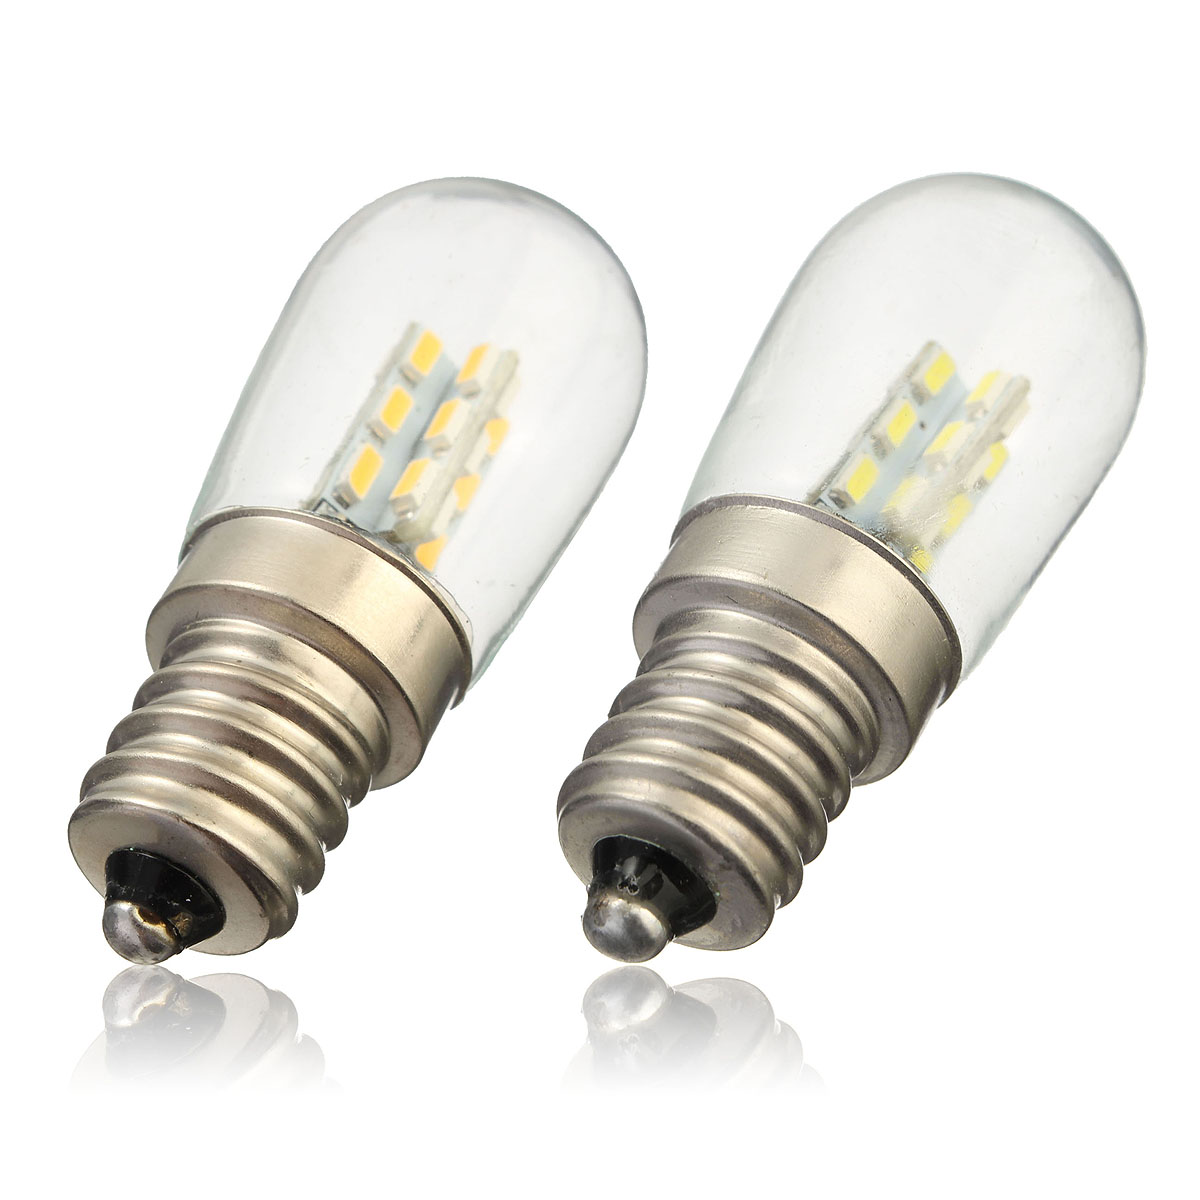 LED Light Bulb E12 2W 3014 SMD 24 LED High Bright Glass Shade Lamp Pure Warm White Lighting 220V For Sewing Machine Refrigerator 4pcs led light bulb 4w smd 48led energy saving lights lamp bulb home kitchen under cabinet lighting pure warm white 110 240v